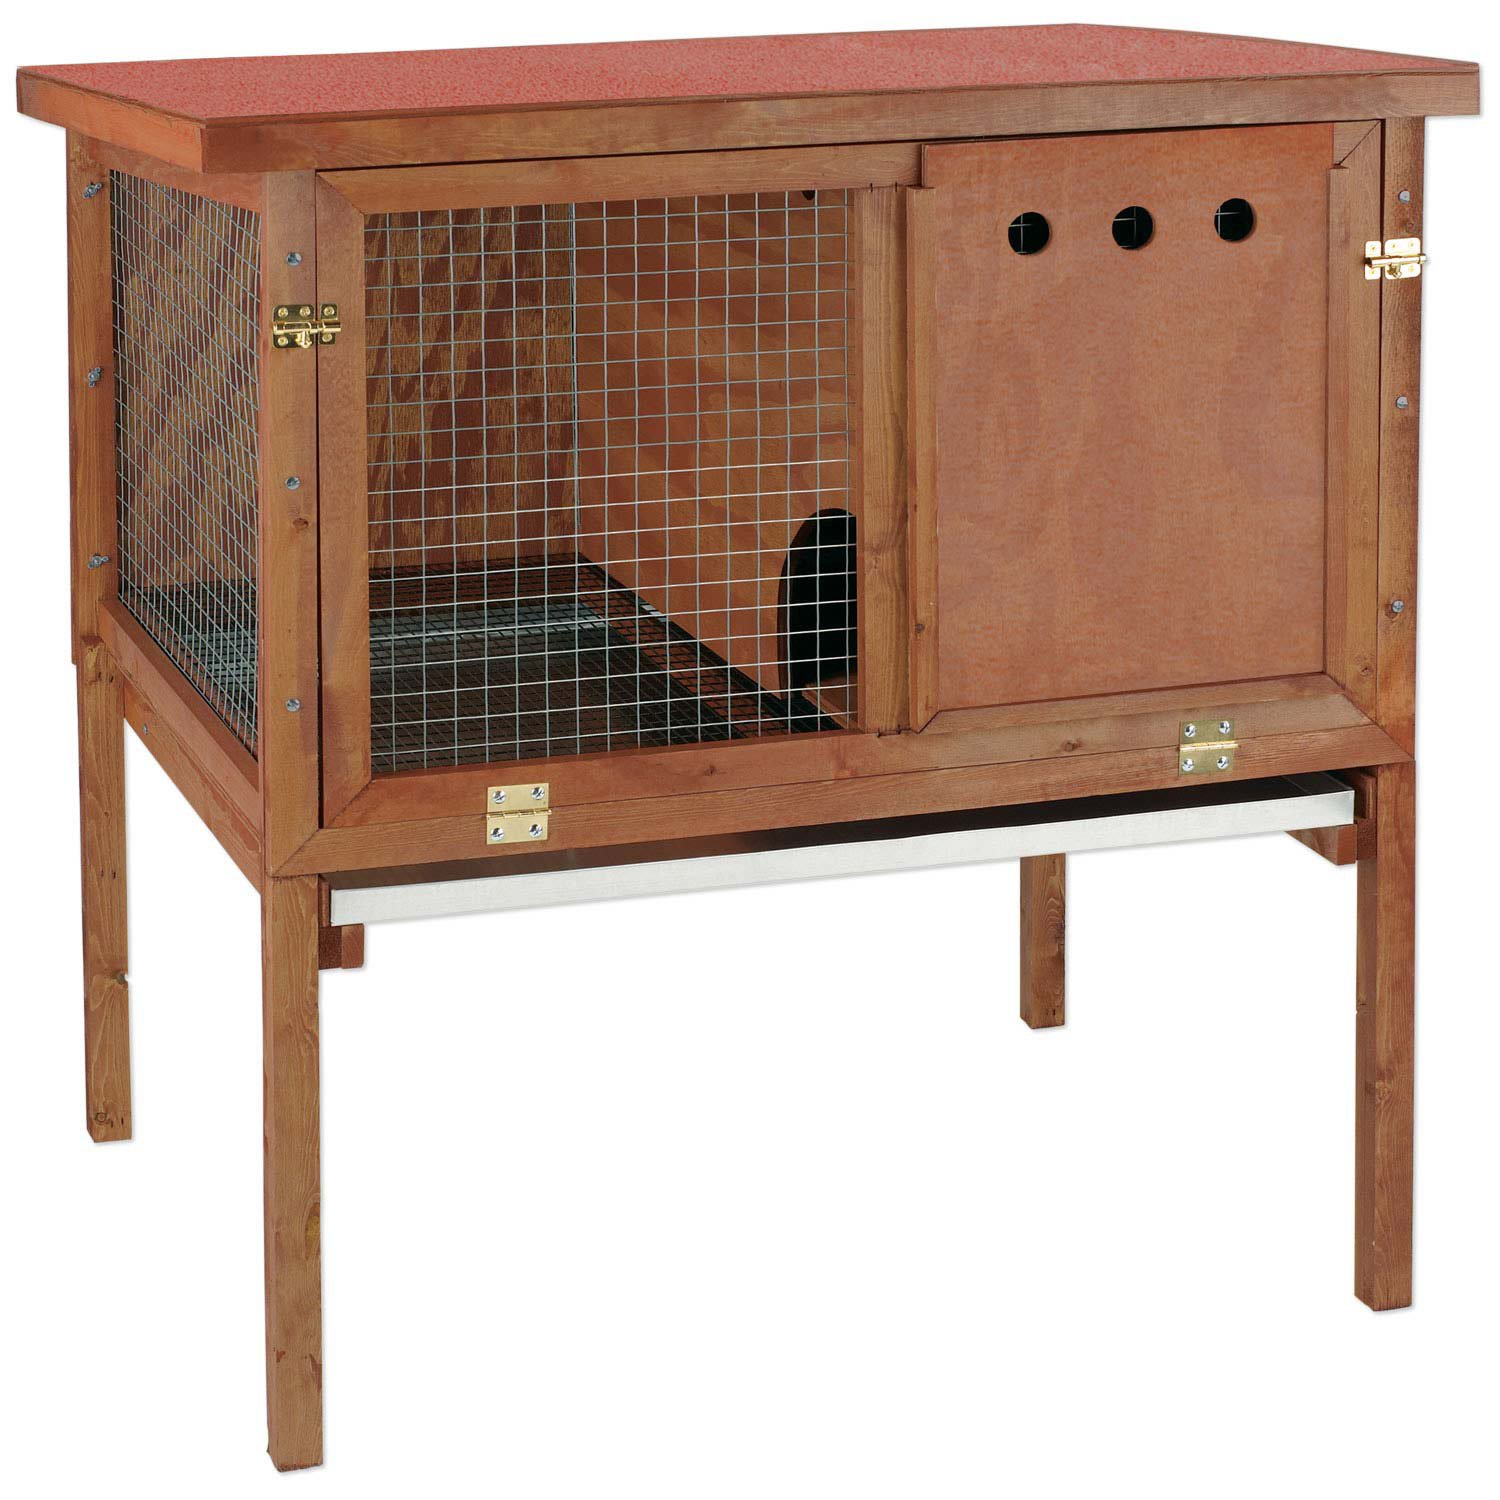 Ware hd deluxe rabbit hutch petco for What is a rabbit hutch